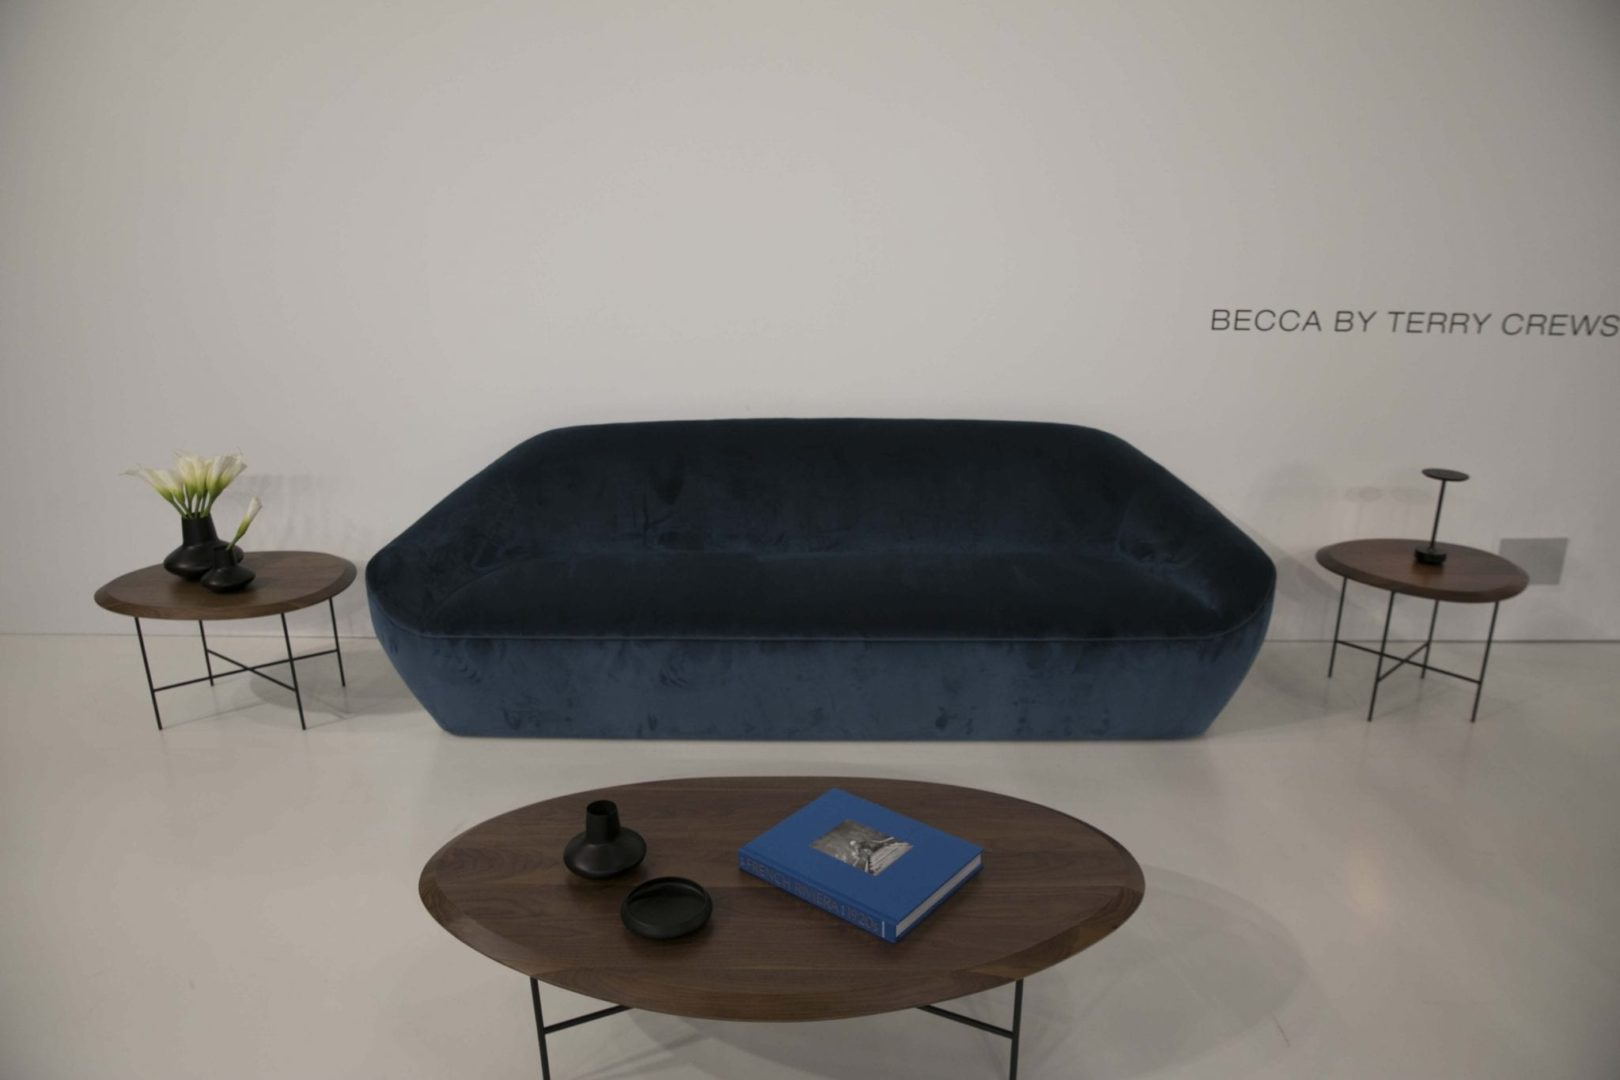 Bernhardt Becca By Terry Crews Furniture Collection Debuts At Icff